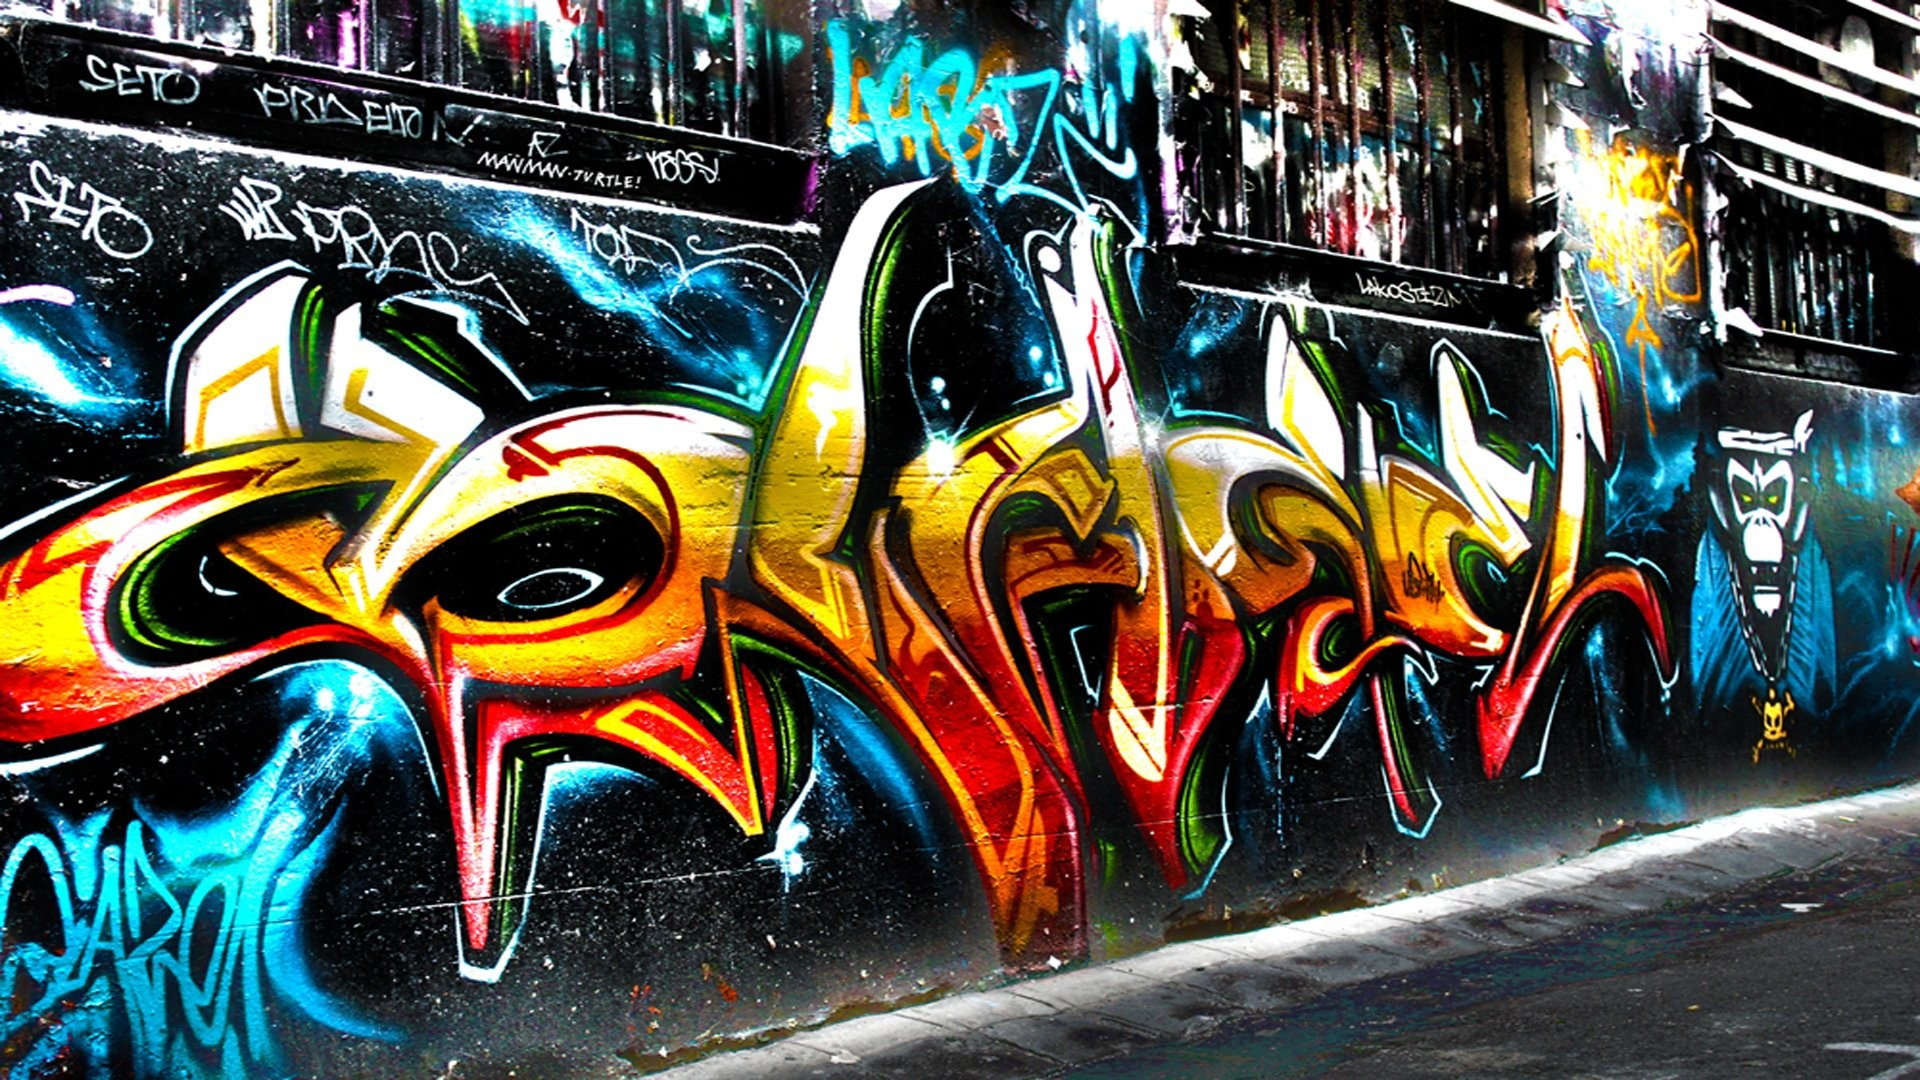 1920x1080 Artistic - Graffiti Trippy Psychedelic Urban Urban Art Wallpaper